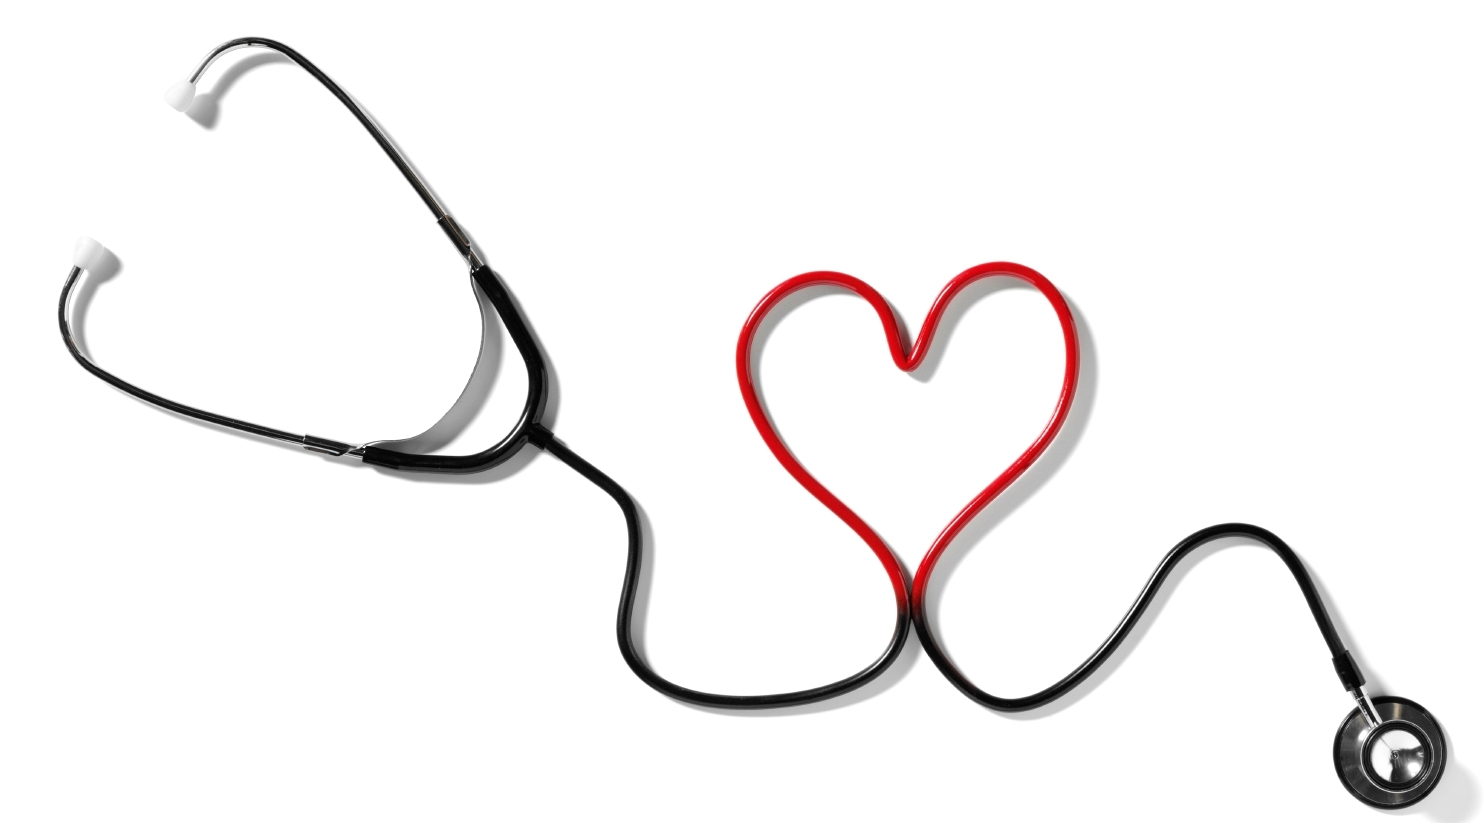 Clipart stethoscope for work